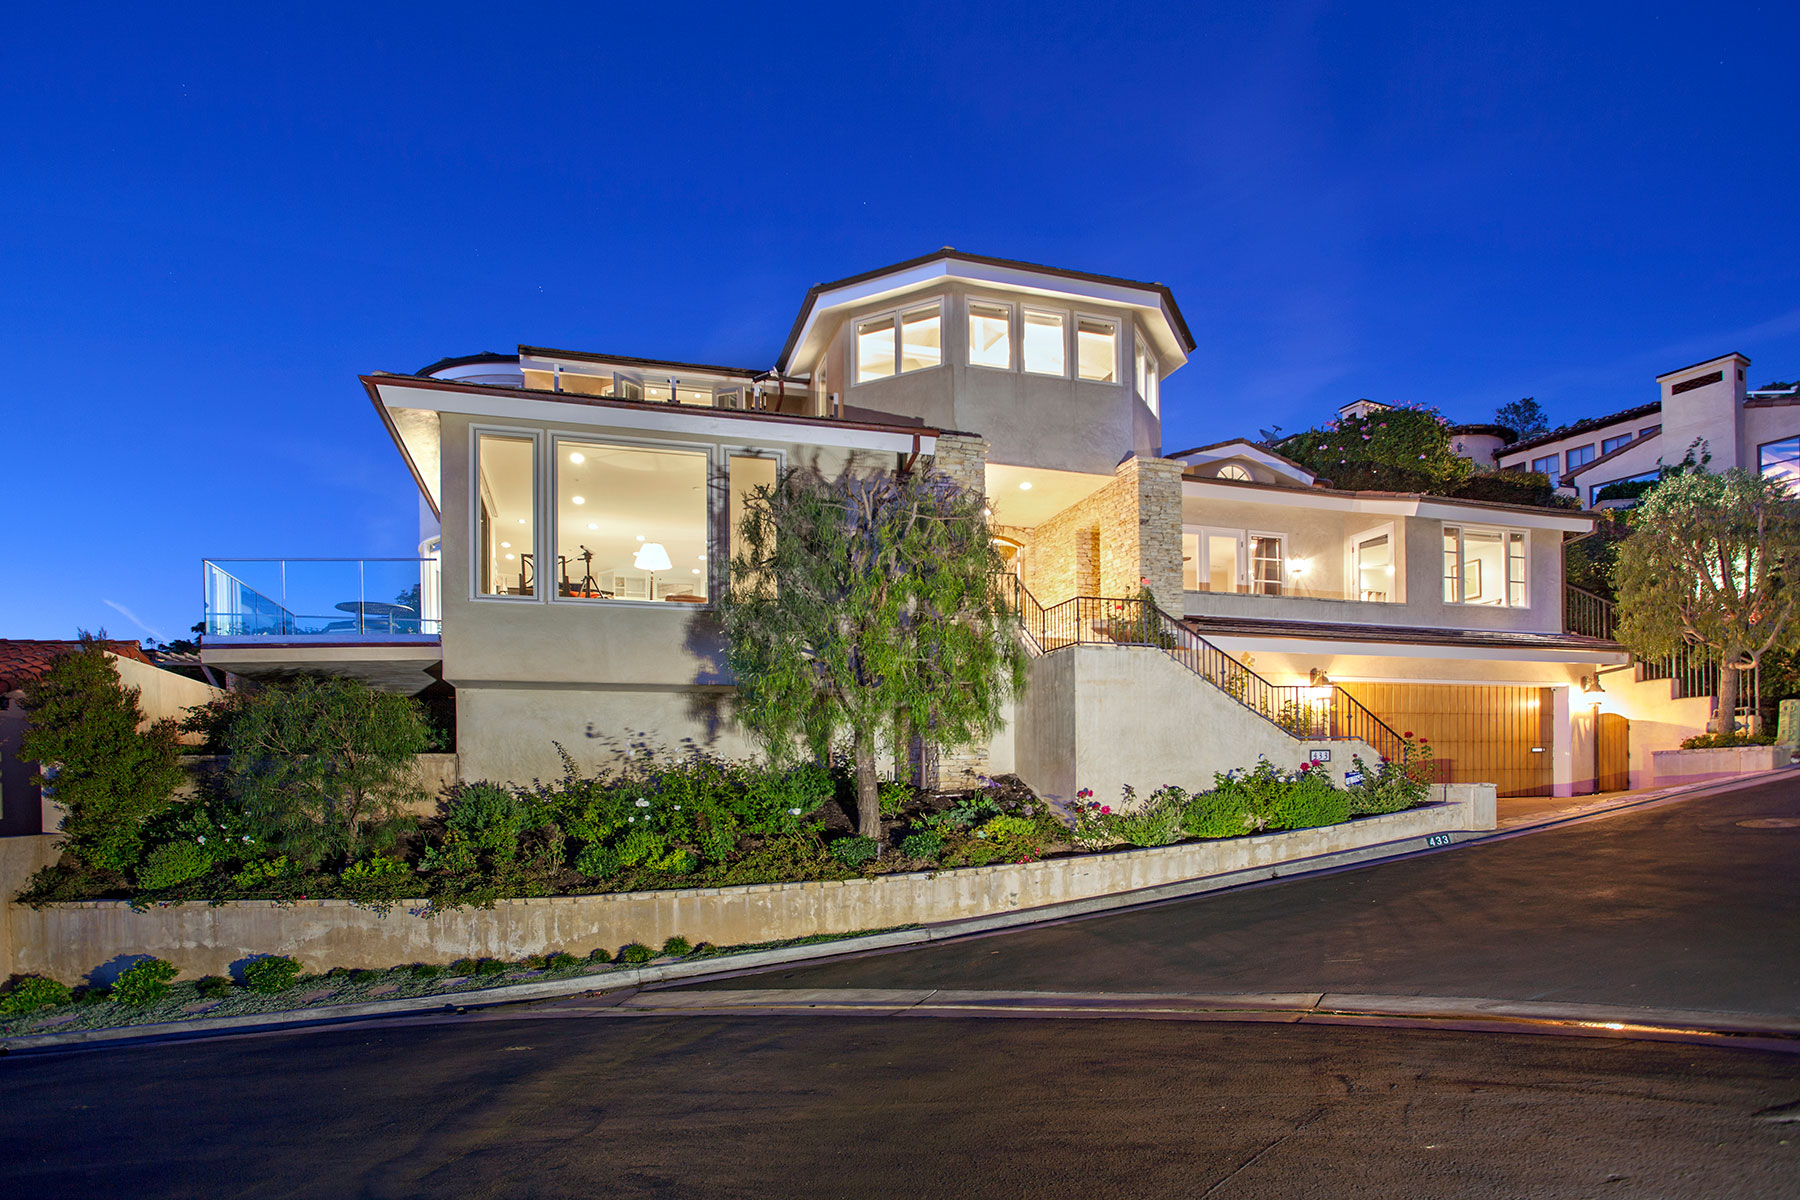 Single Family Home for Sale at 433 Emerald Bay Laguna Beach, California, 92651 United States